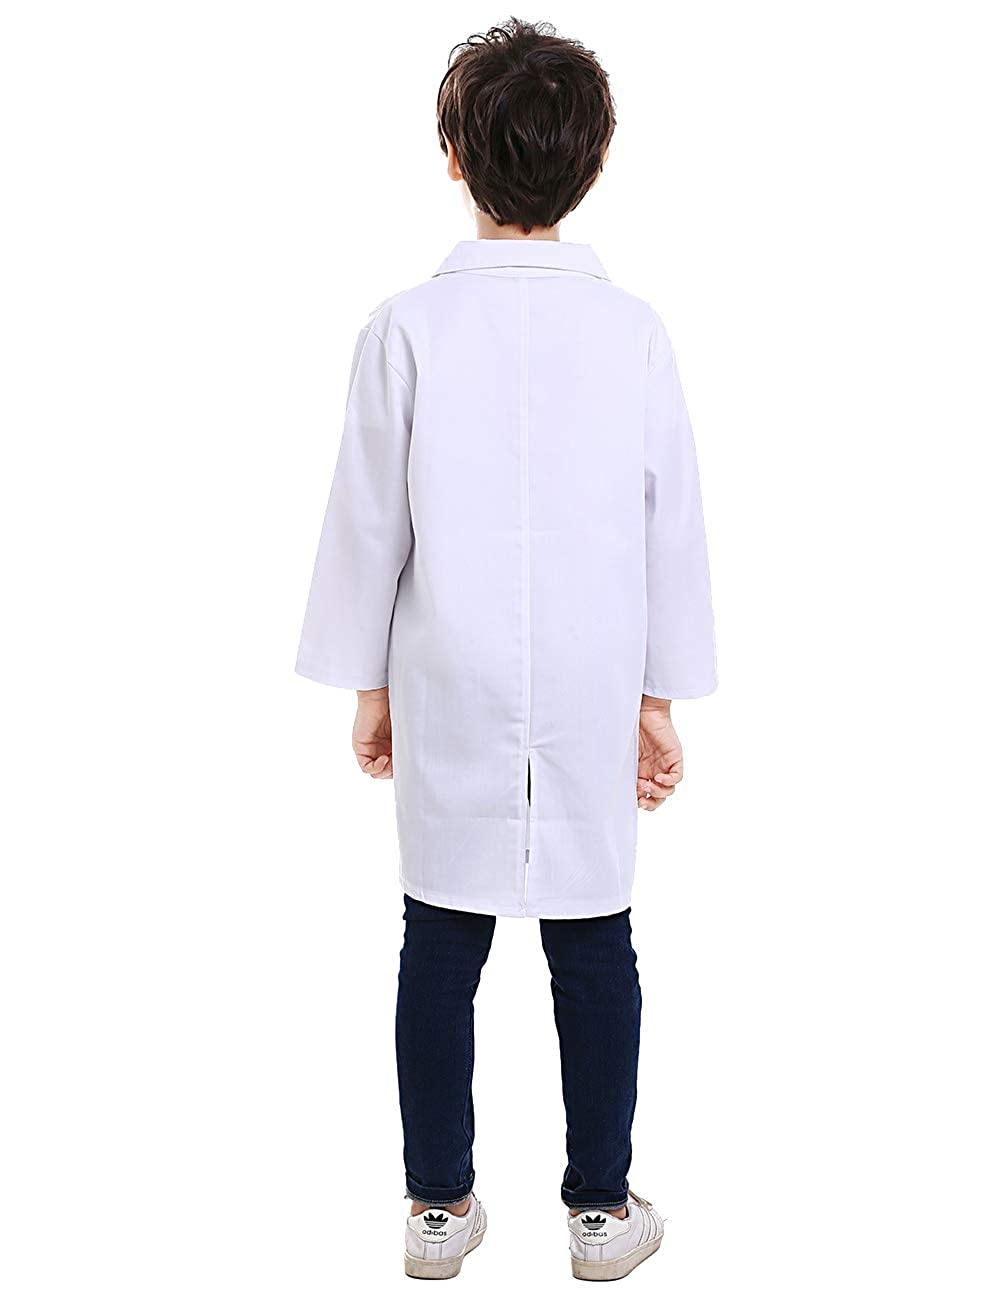 TOPTIE Kids Scrubs White Lab Coats for Scientists or Doctors